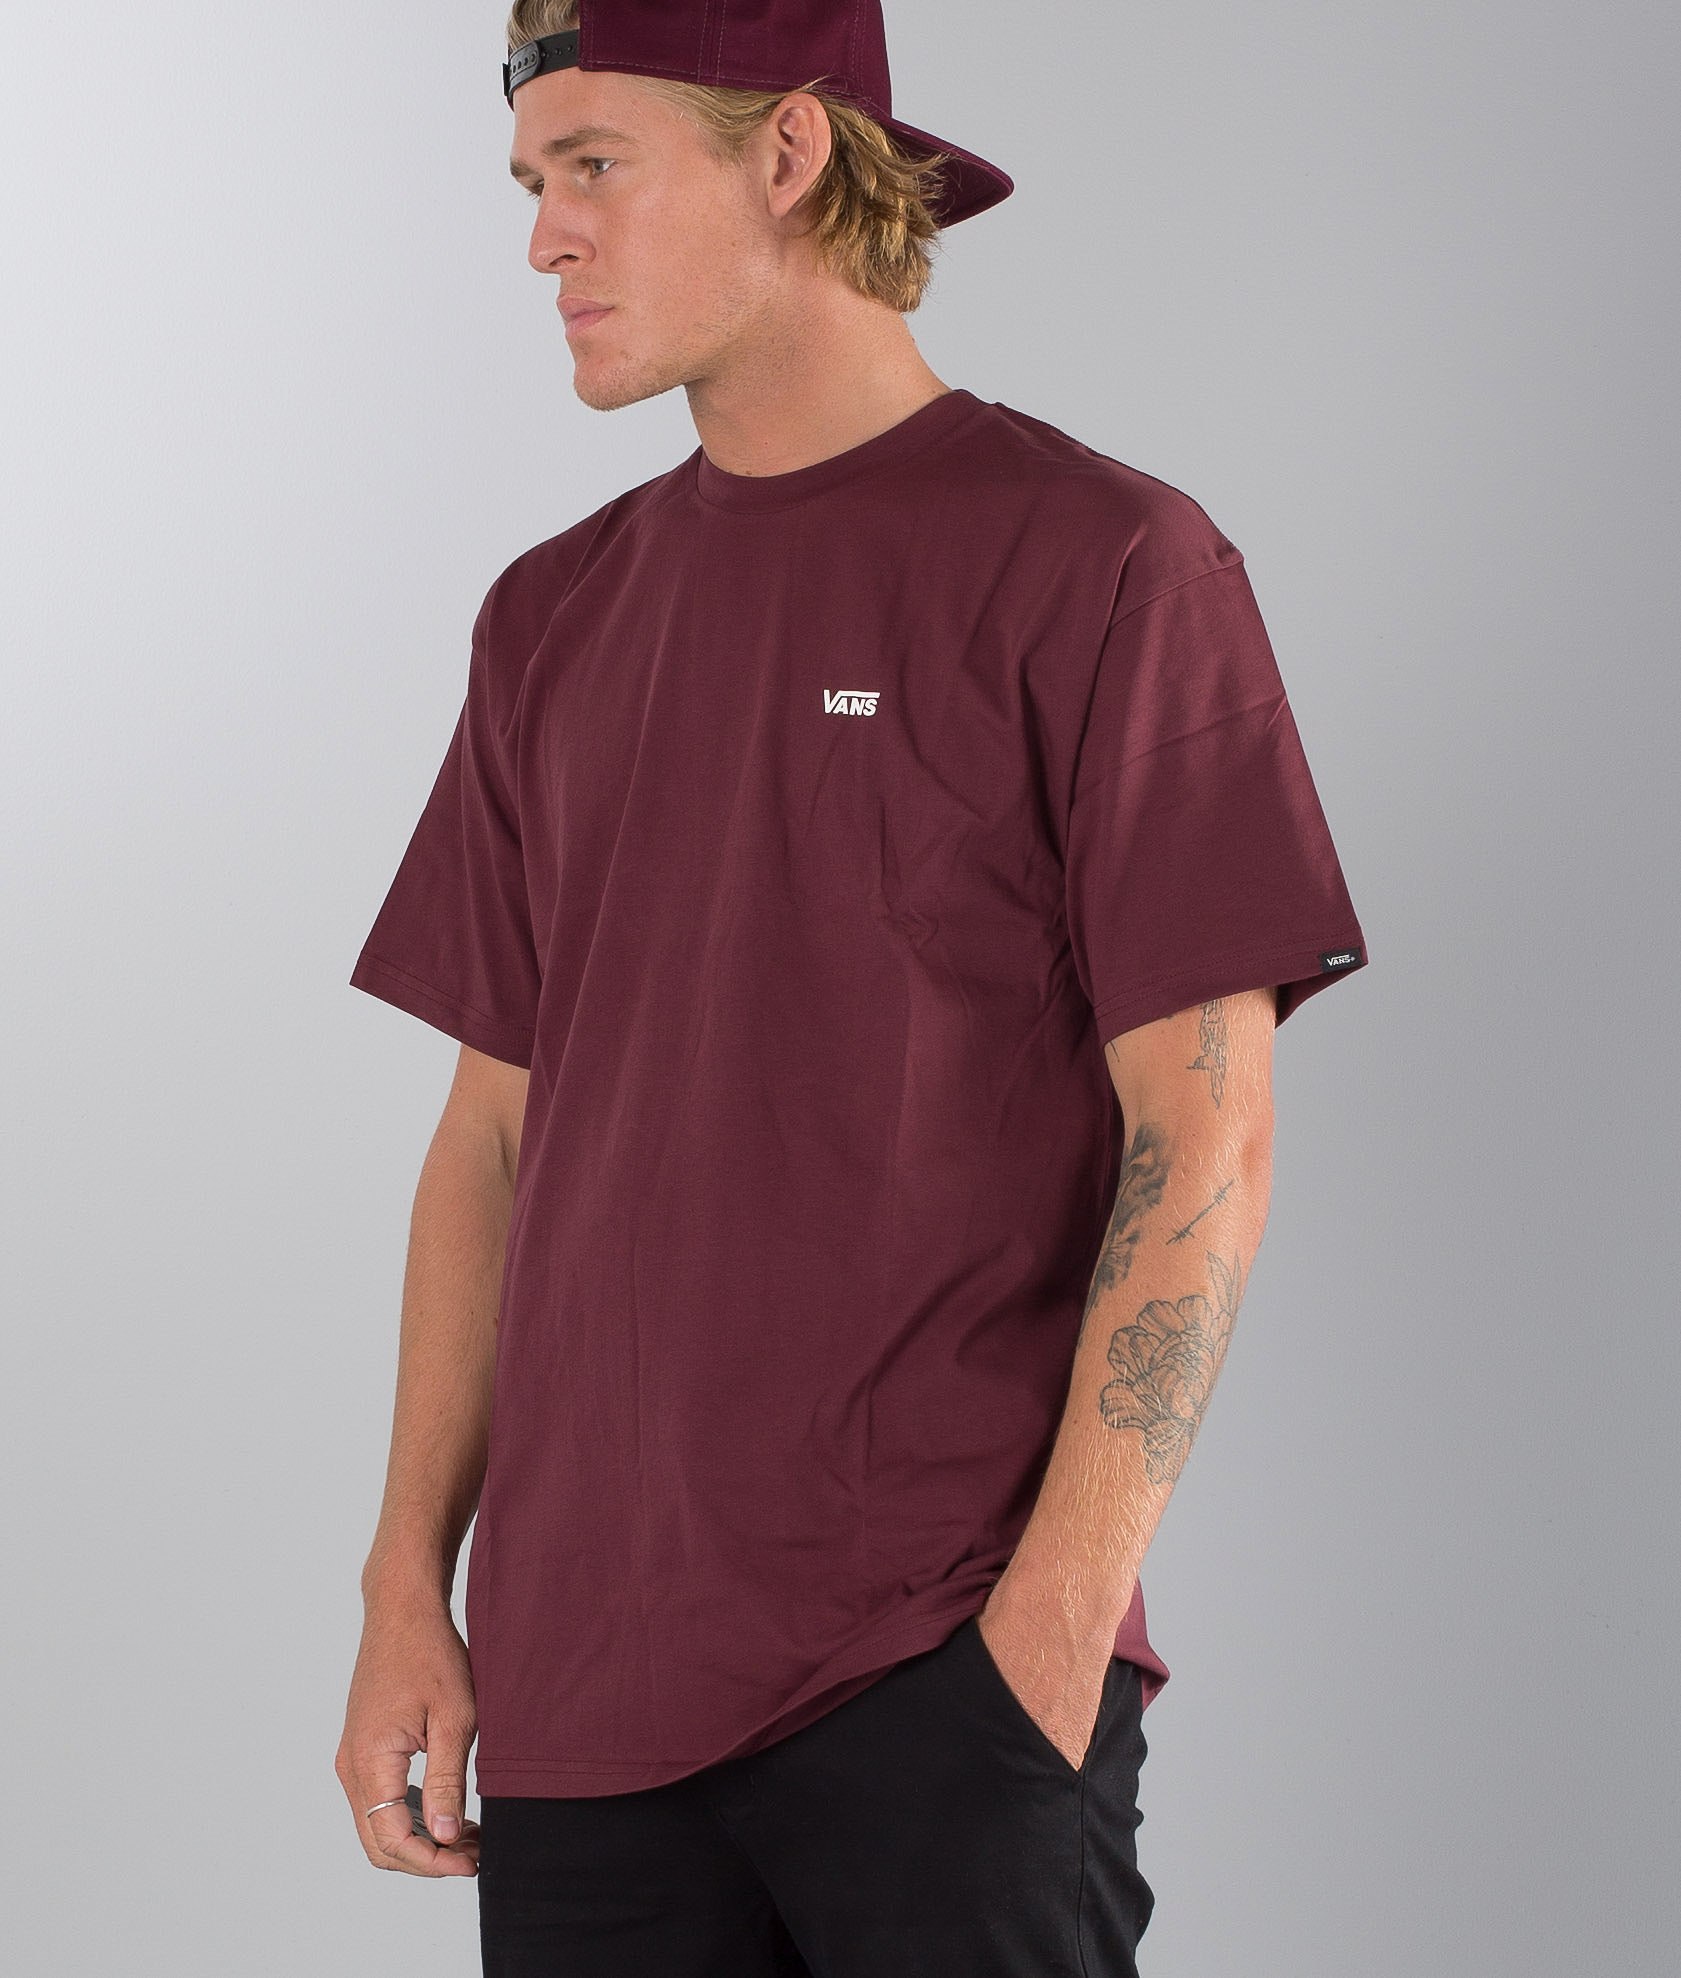 9eae6cfc8d7df8 Vans Left Chest Logo T-shirt Port Royale - Ridestore.com